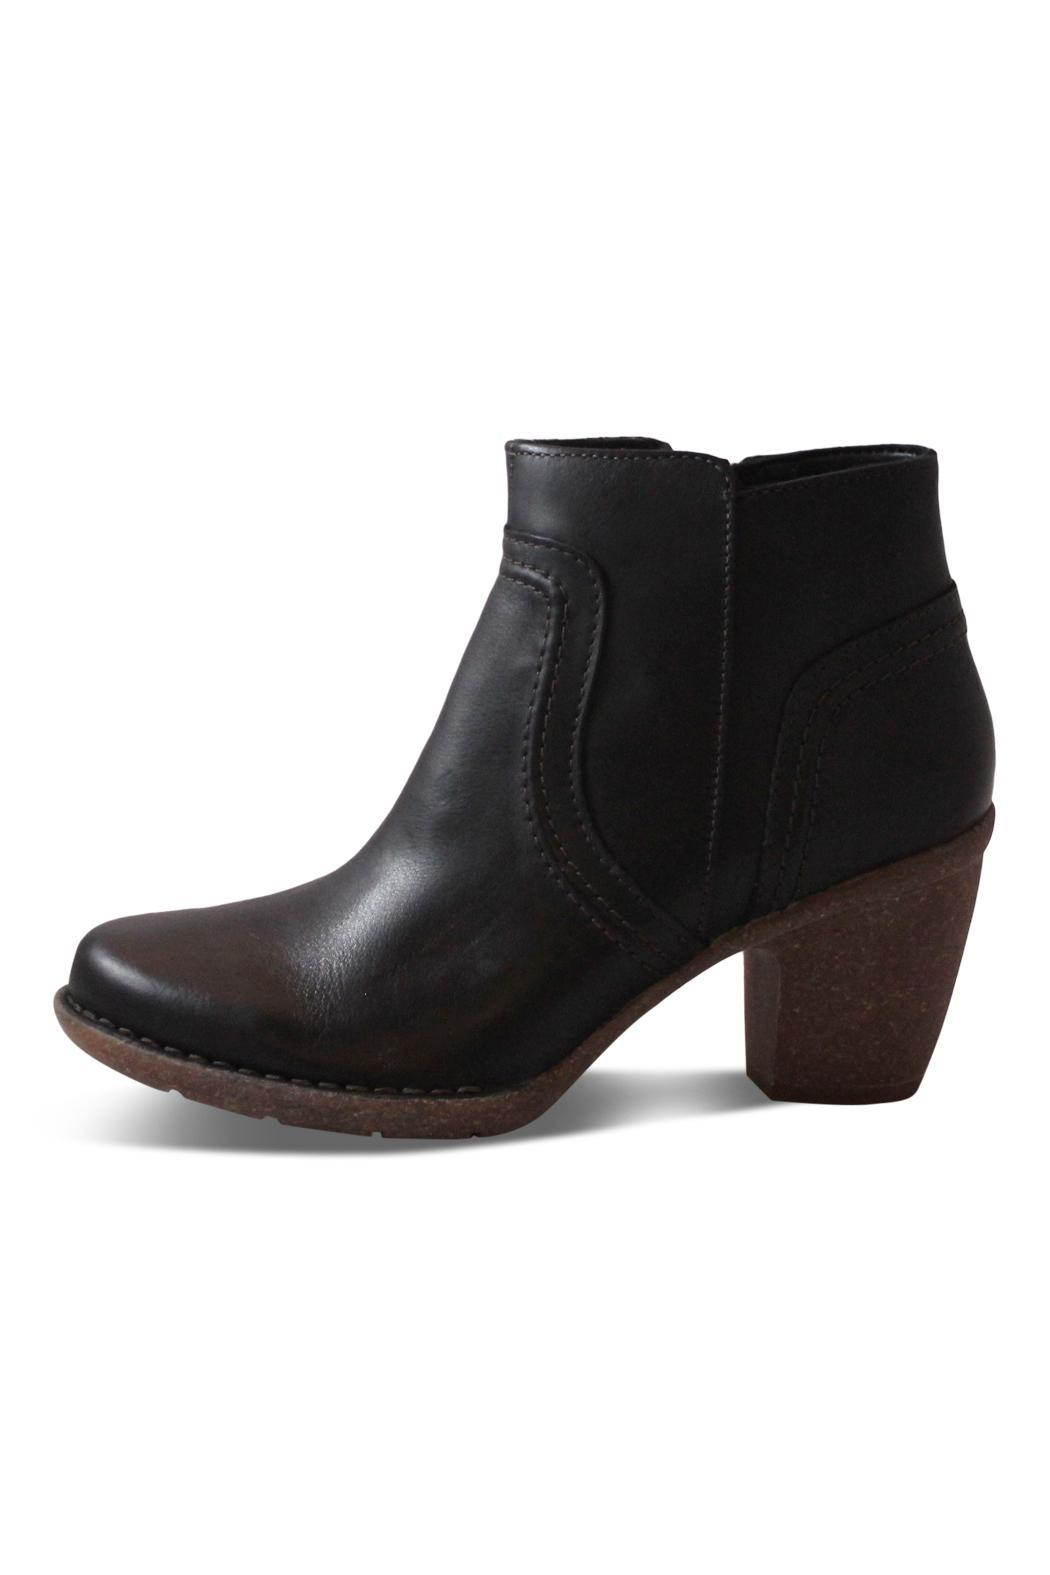 Clarks Black Ankle Boot - Main Image